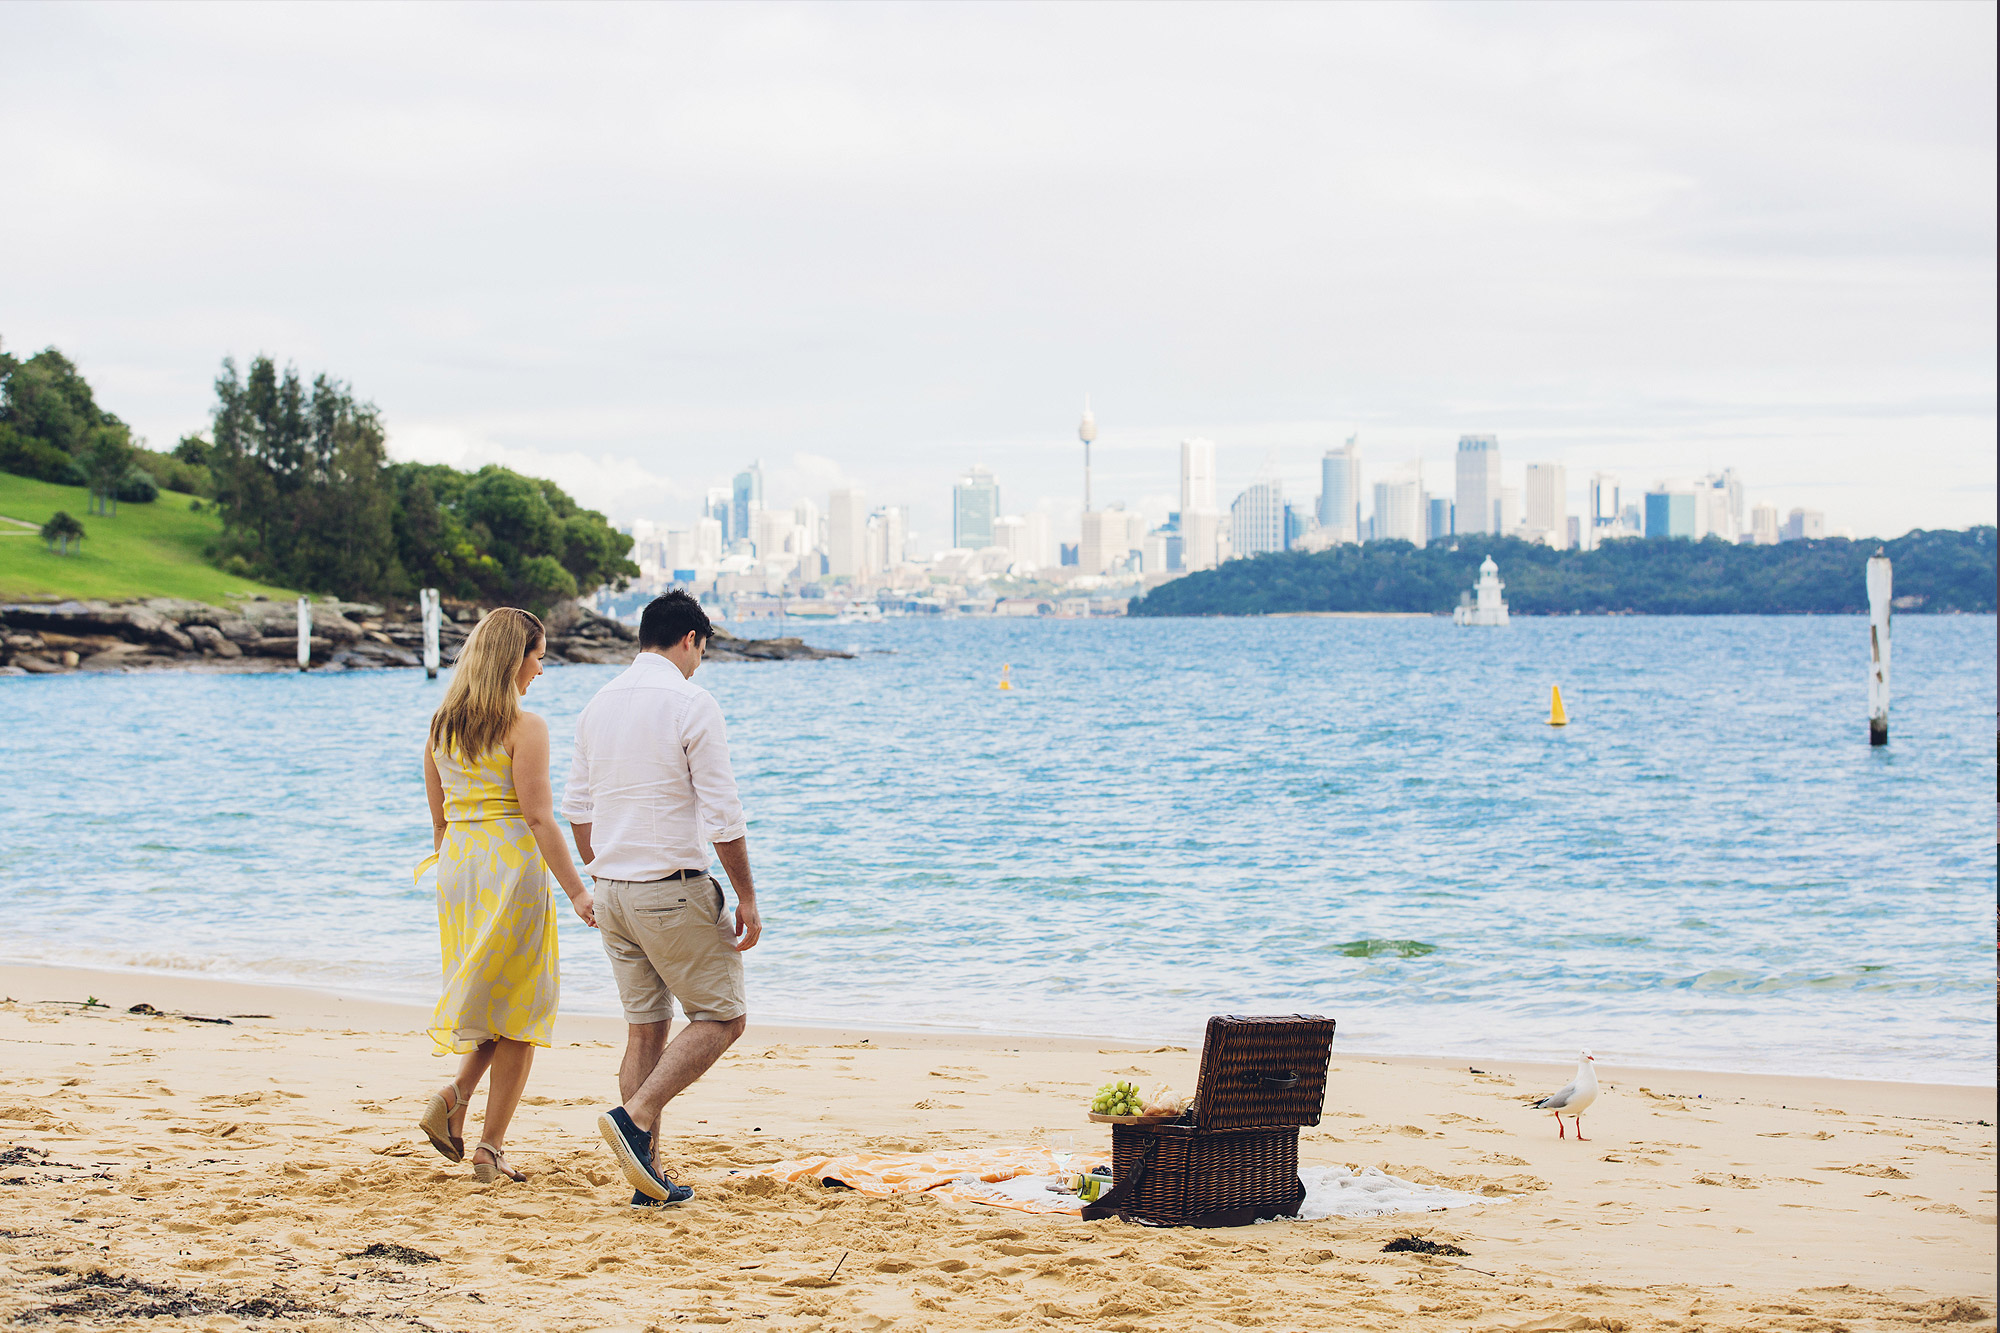 Beach picnic at Watsons Bay